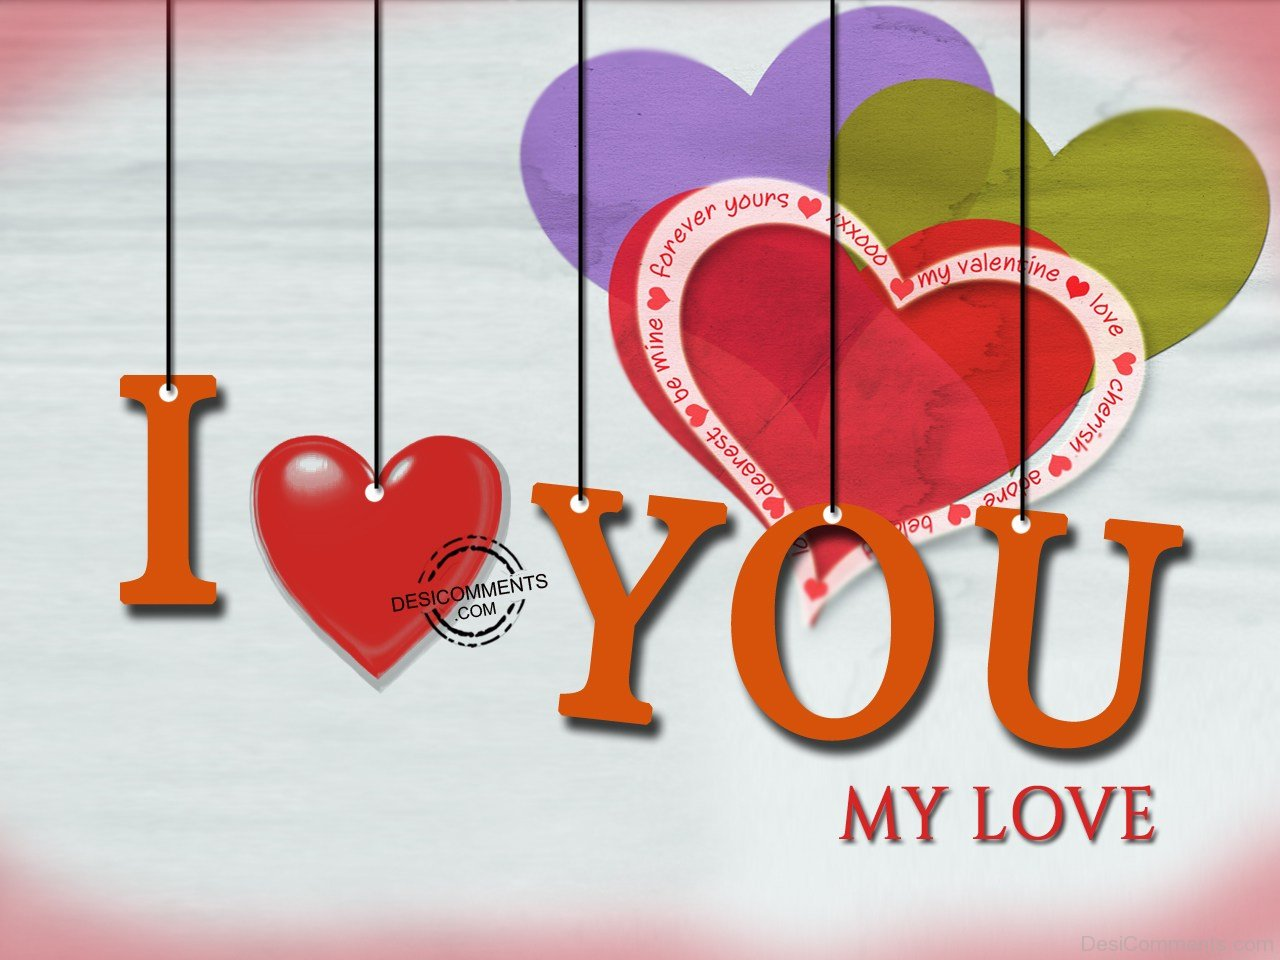 I Love You,MY Love - Desicomments.com